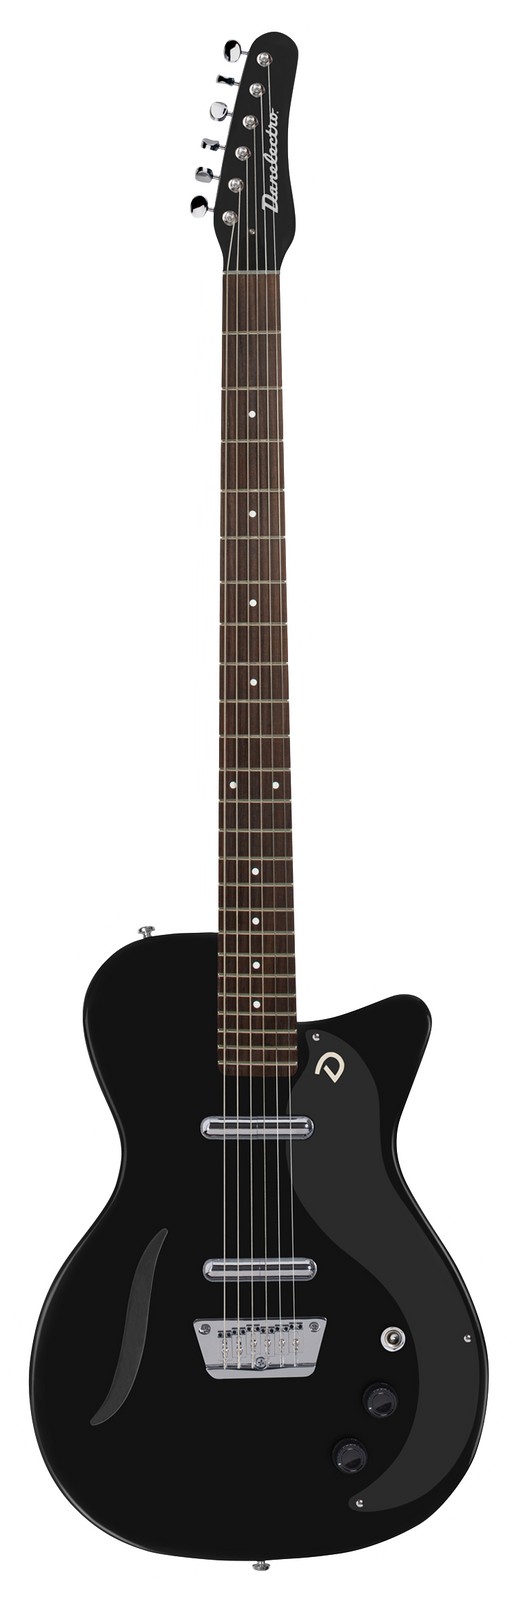 Danelectro '56 Vintage Baritone Electric Guitar Black